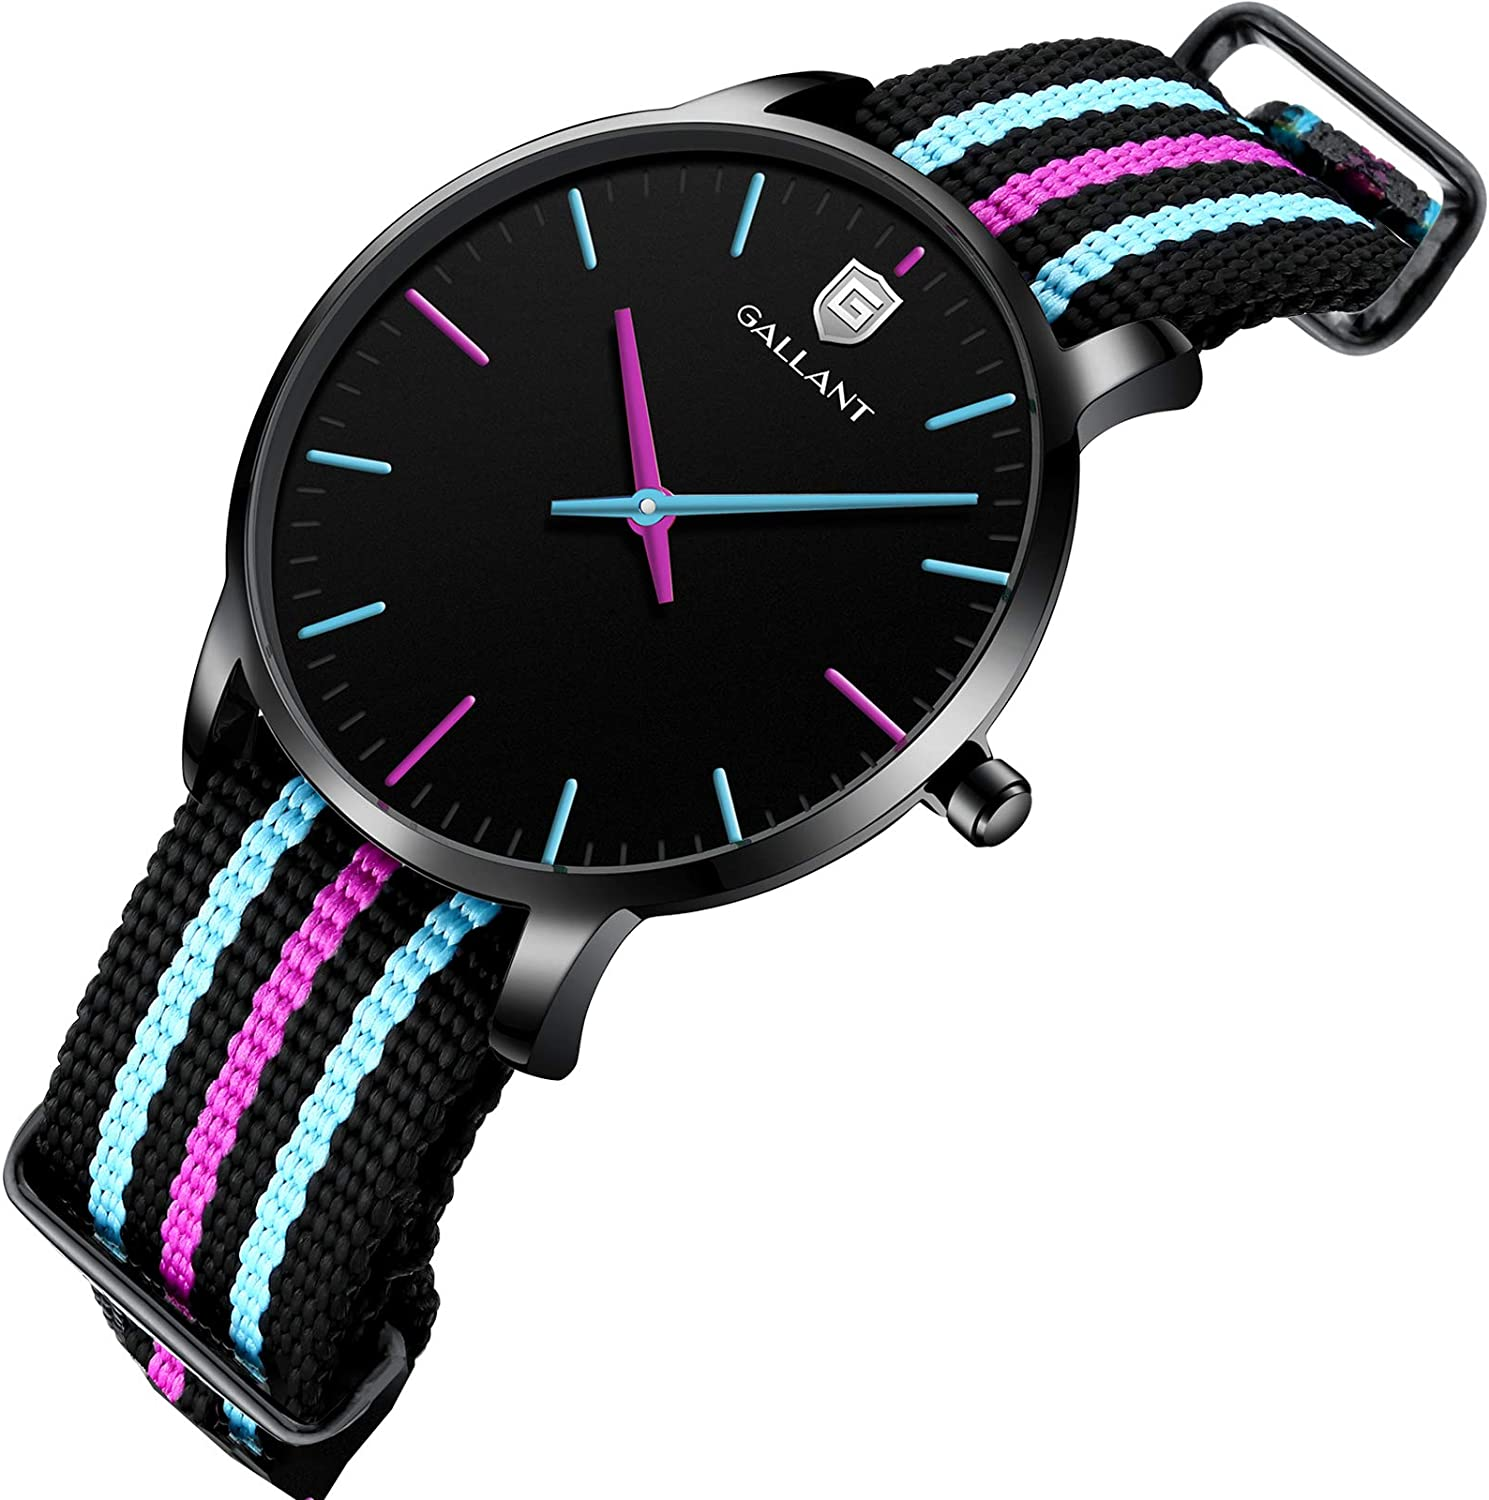 Women's Classic Watch Analog Max 46% OFF Quartz Watches Band Strap with Nylon